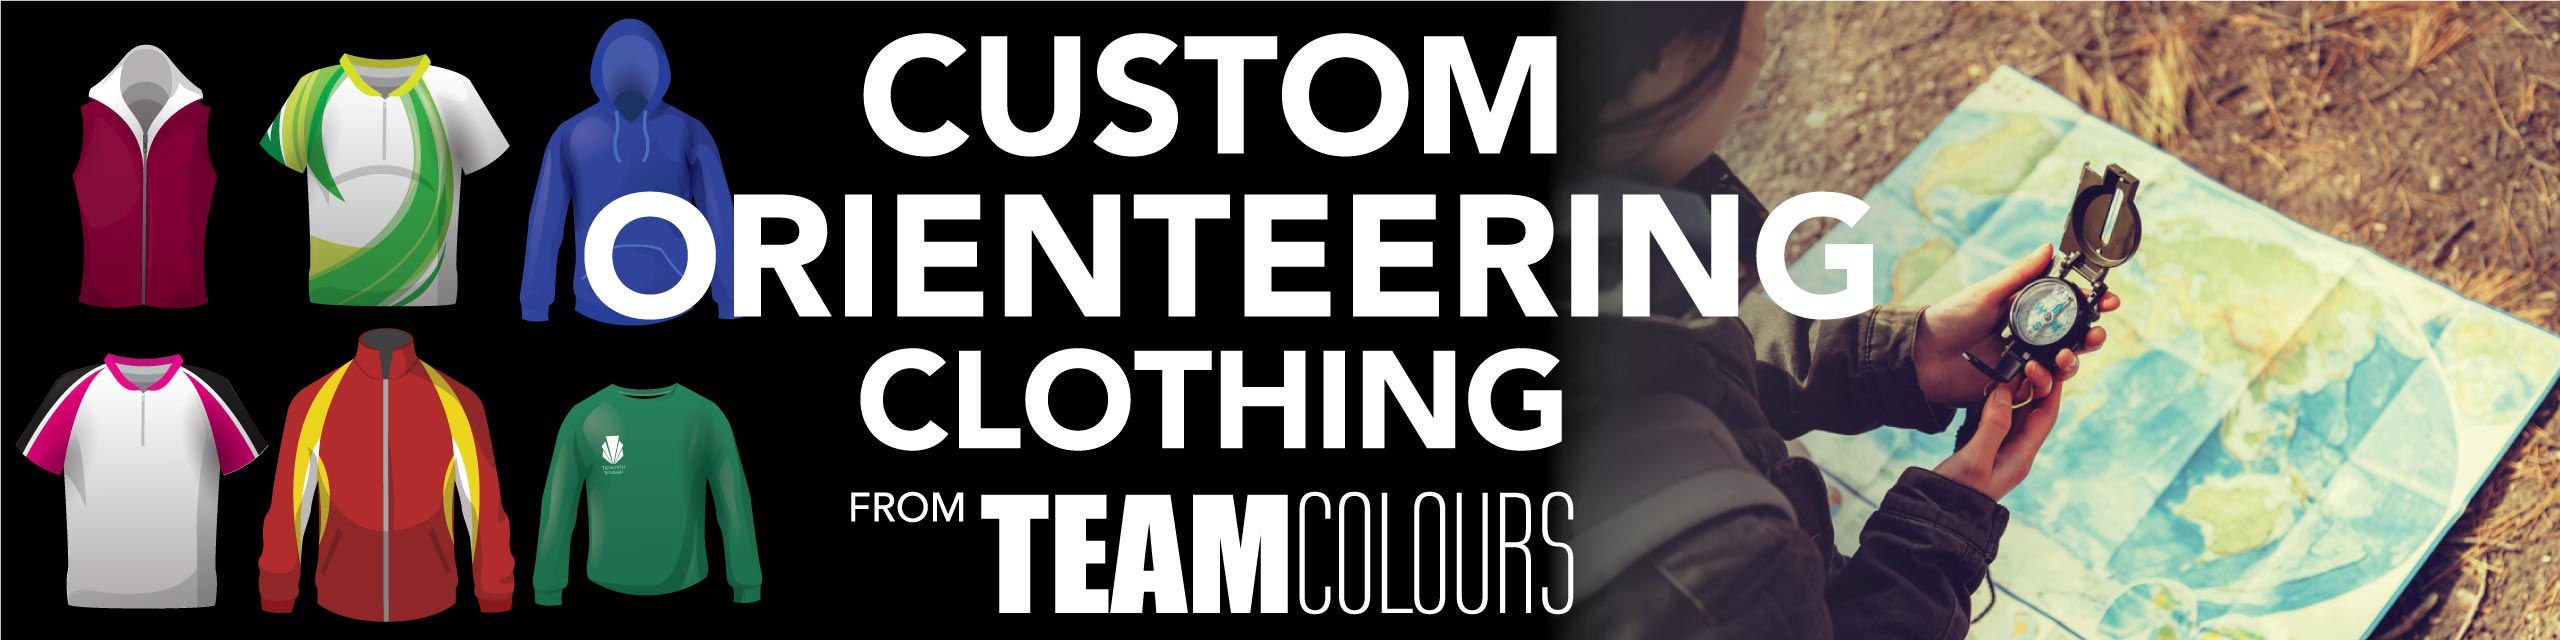 Design you own orienteering clothing at Team Colours